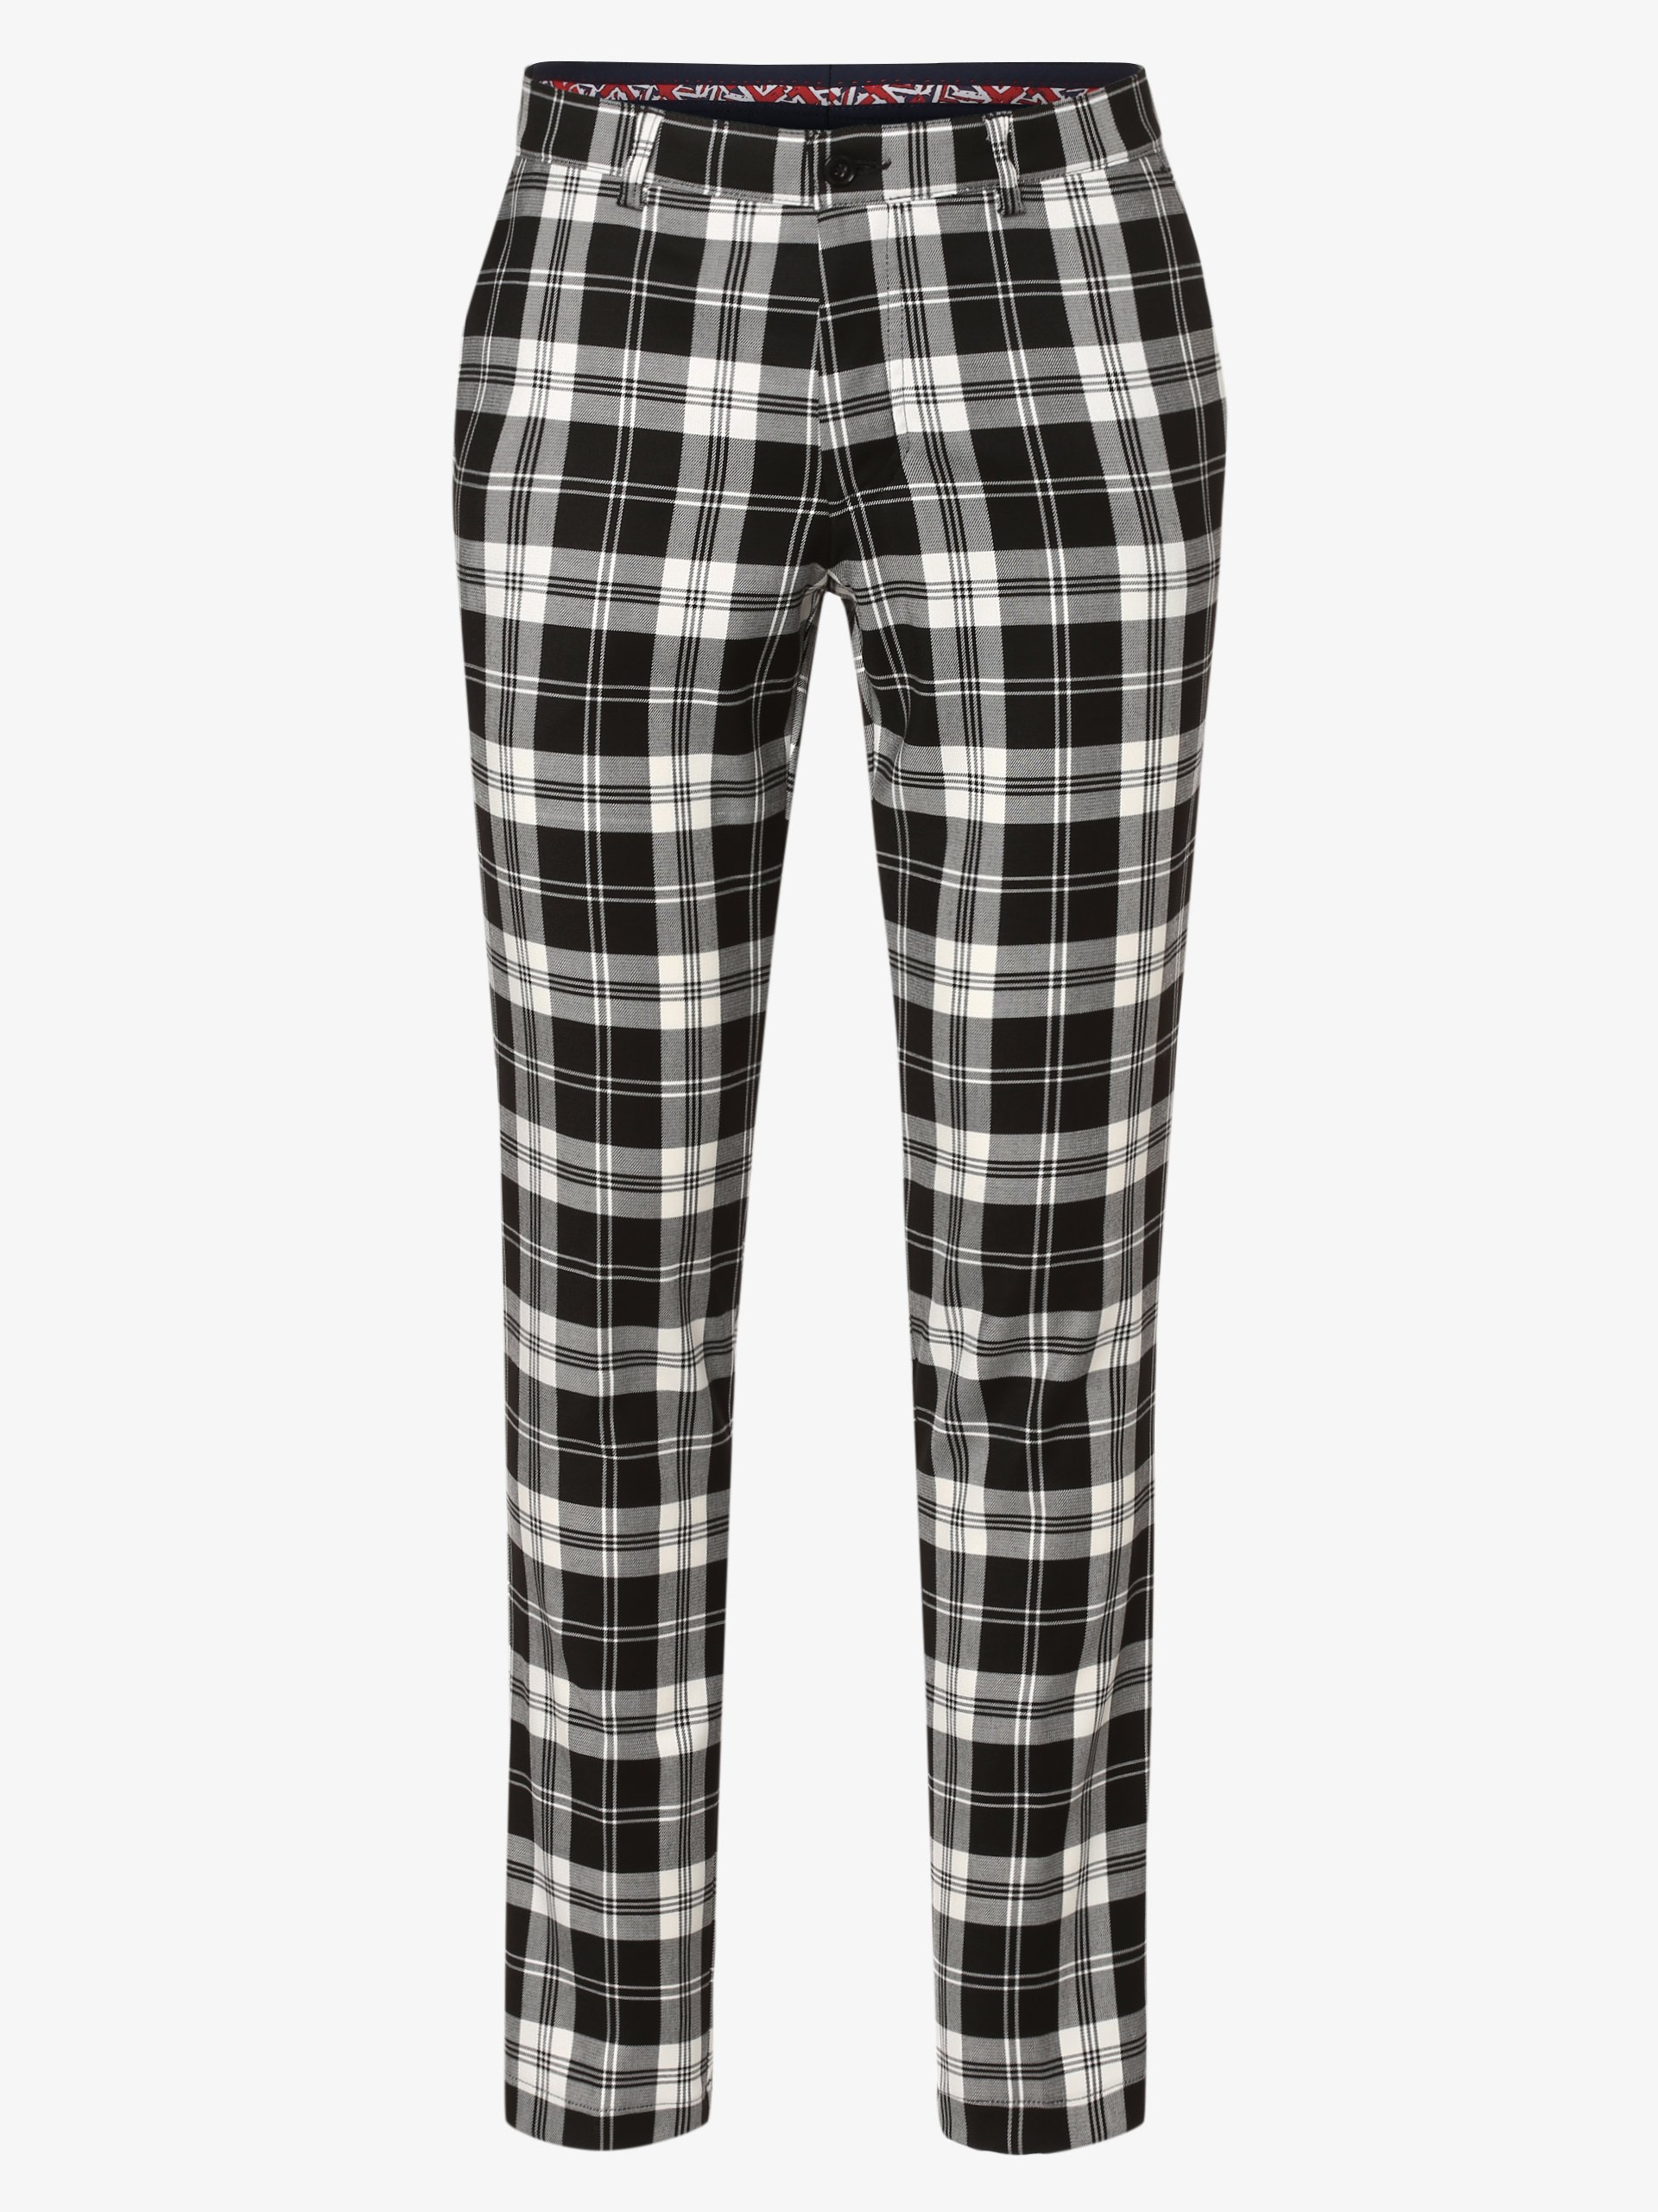 Finshley & Harding London Herren Hose